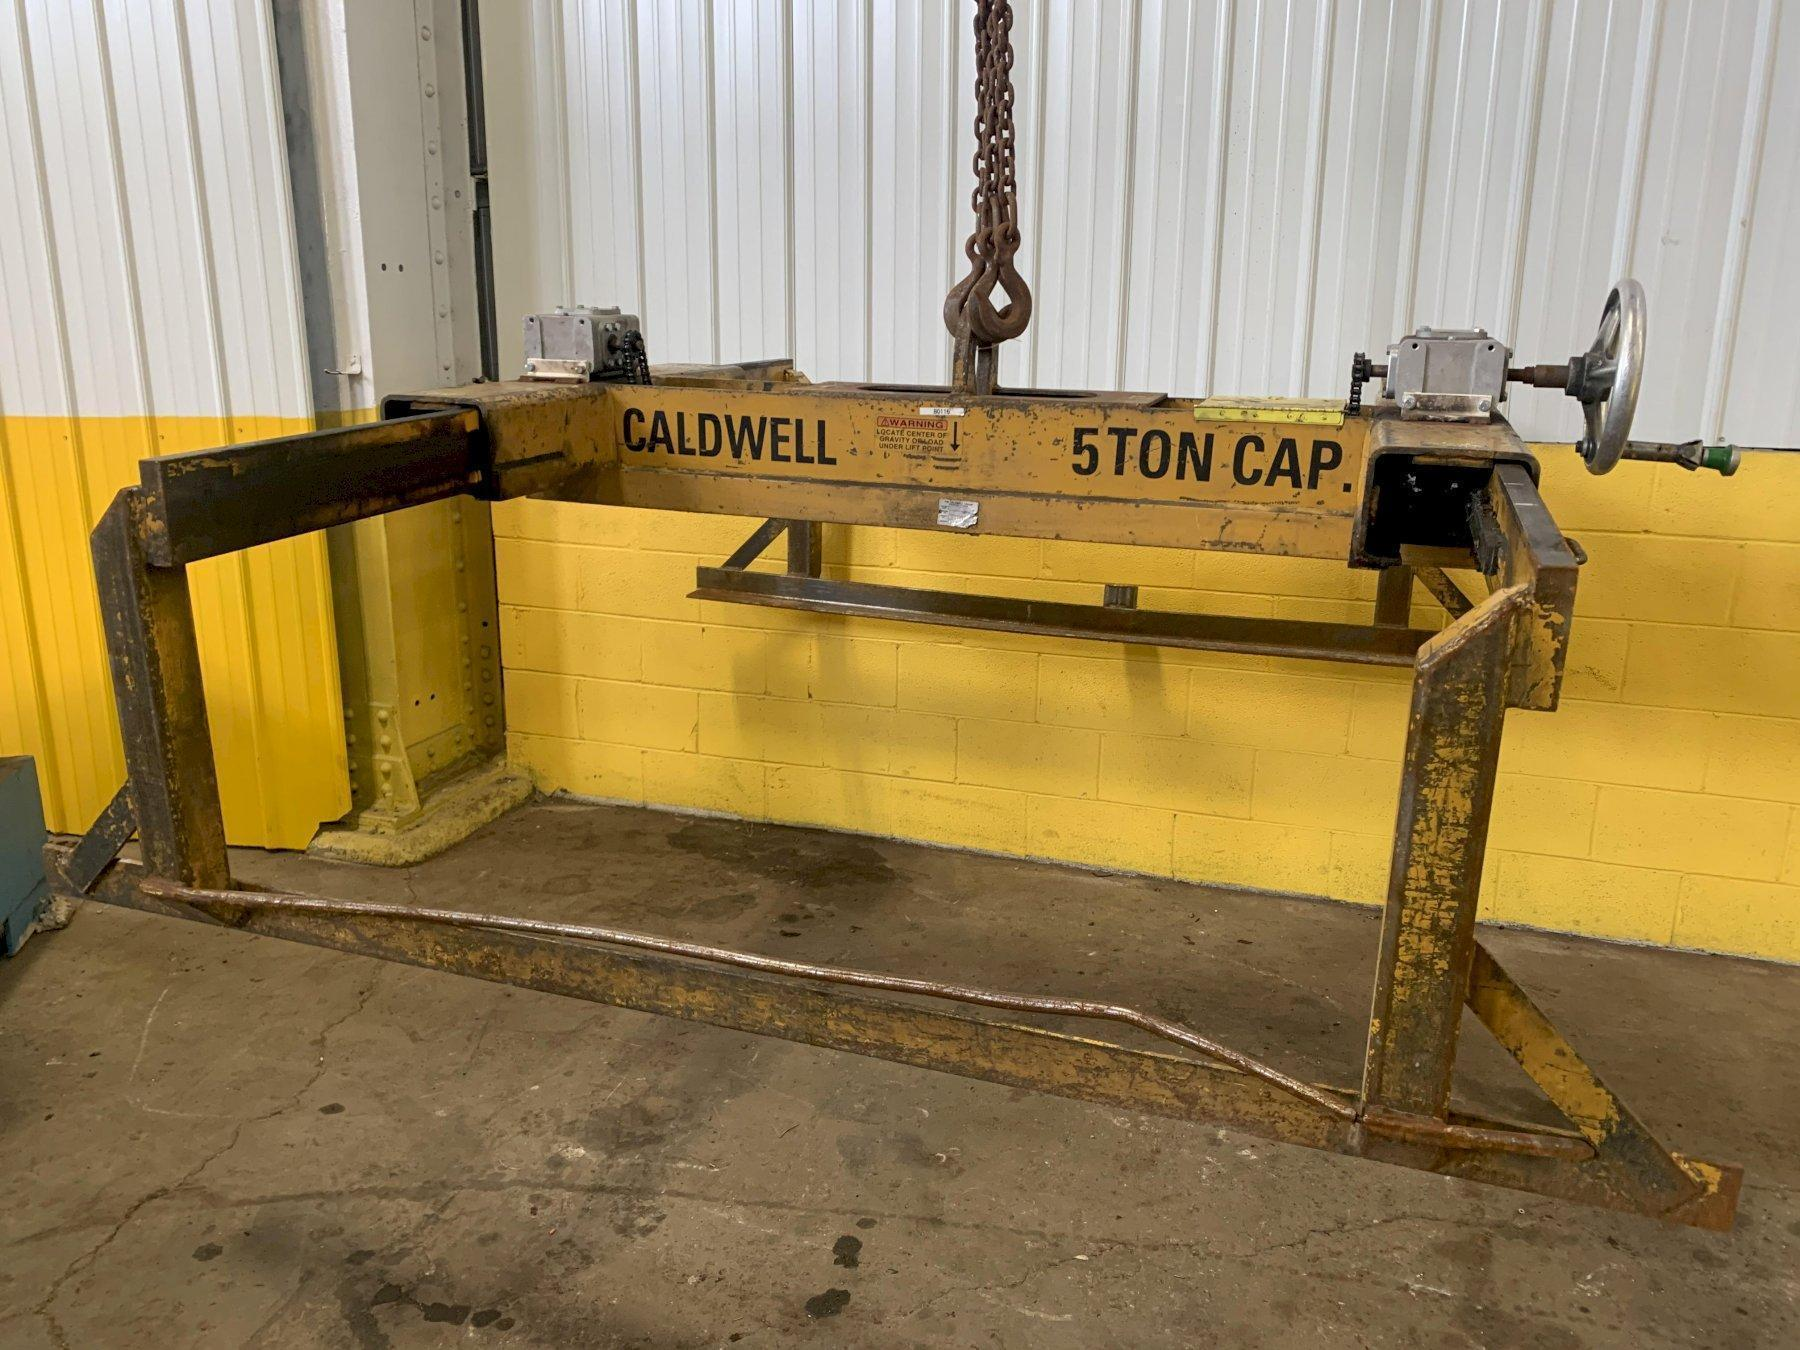 "10,000 LBS X 120"" X 24-80"" WIDE CALDWELL ADJUSTABLE SHEET LIFTER. STOCK # 0613920"